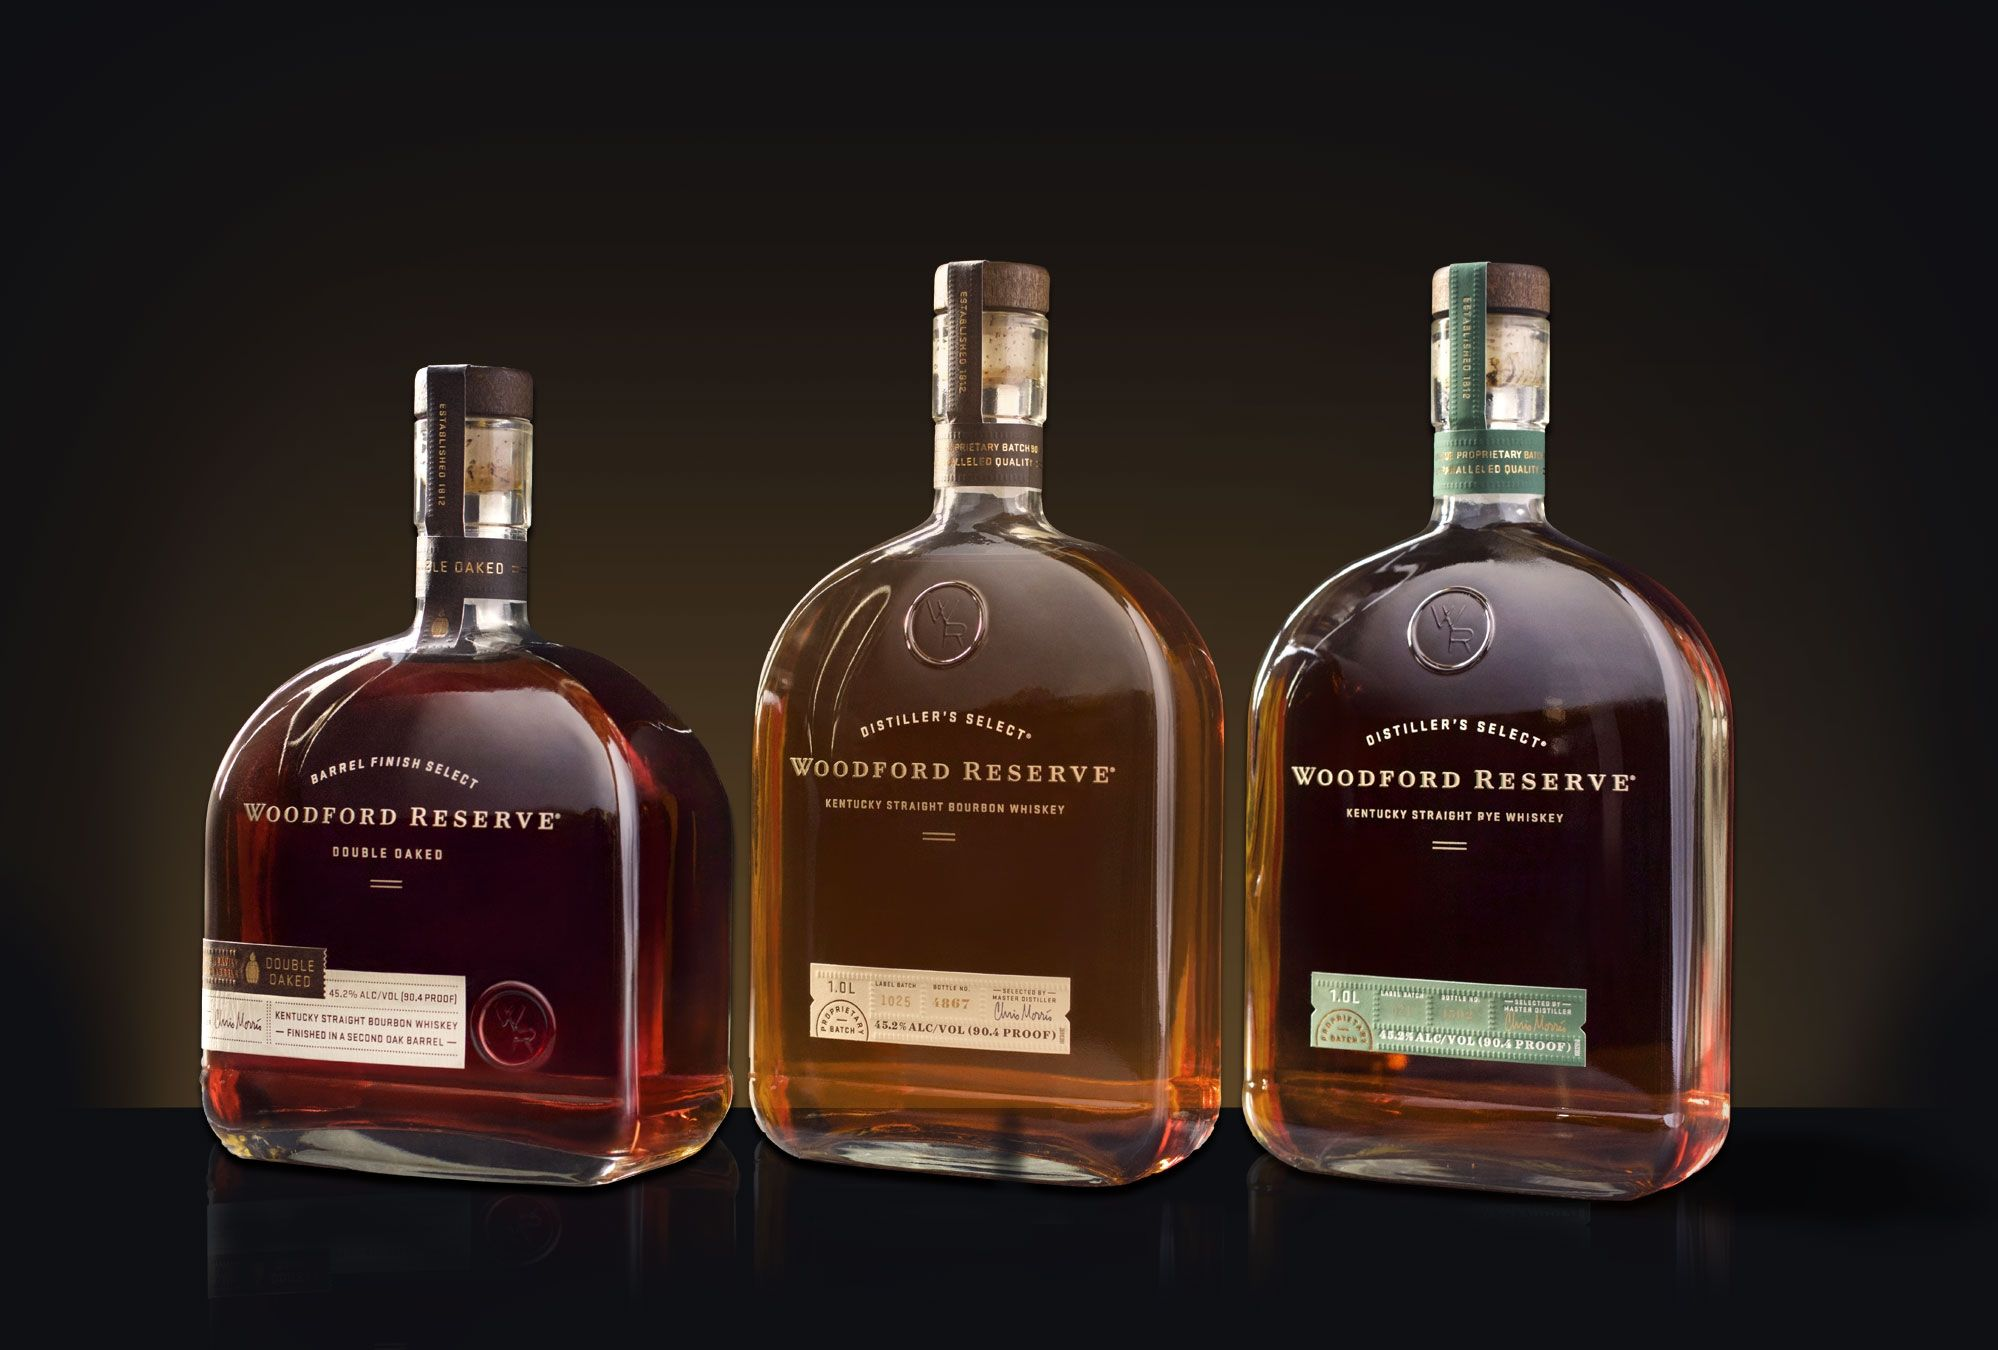 Kentucky Derby Woodford Reserve Promotions